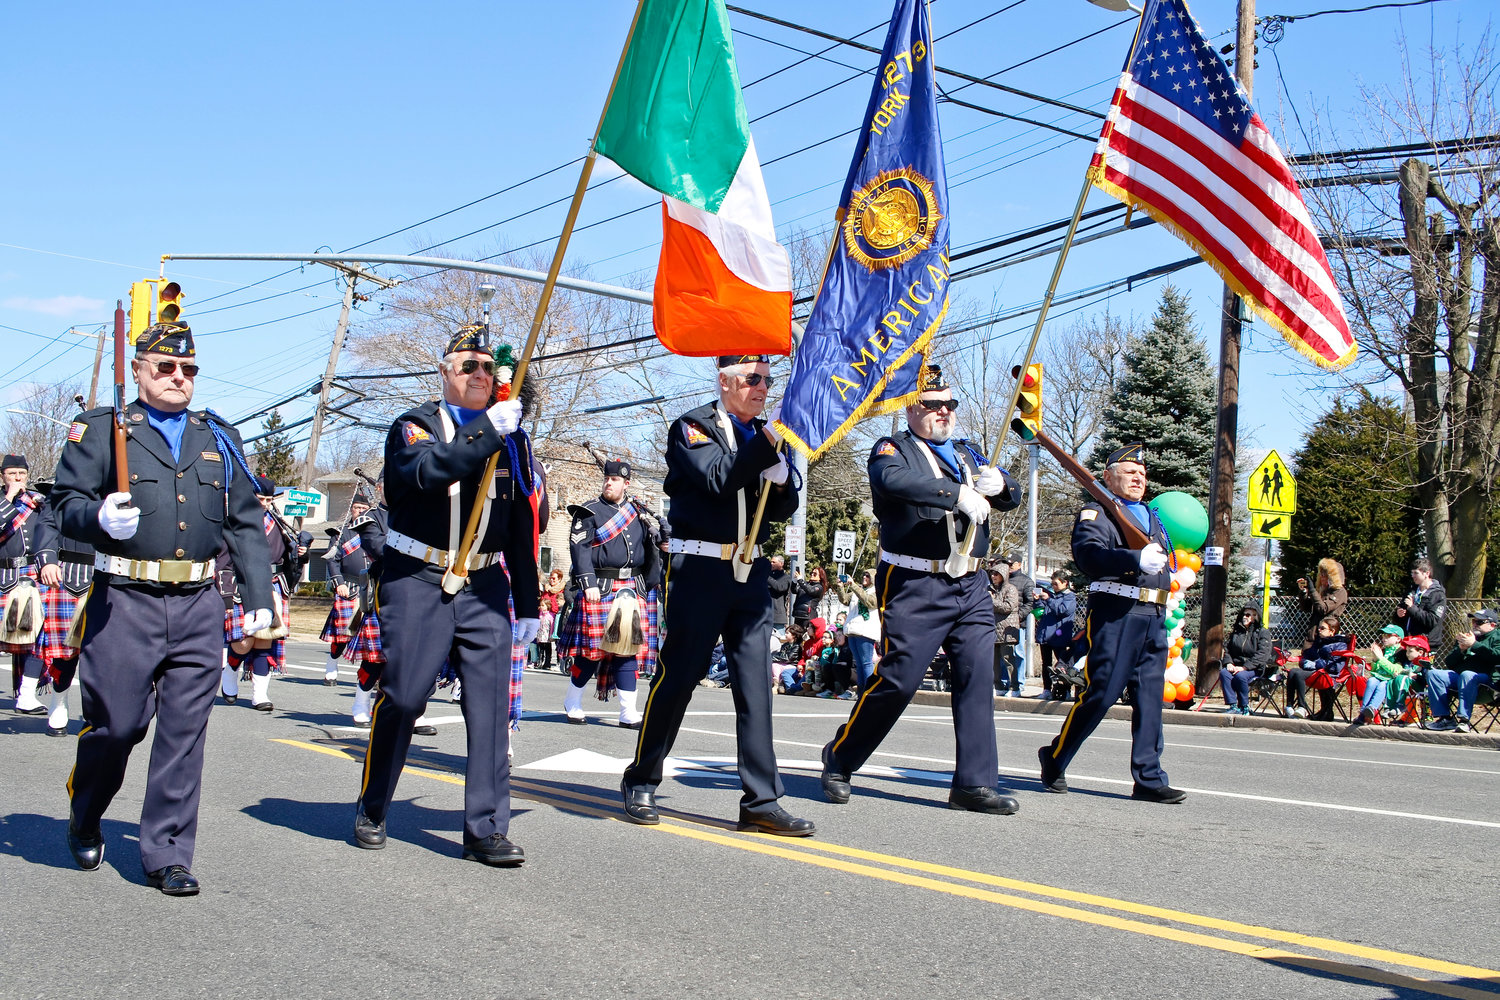 Wantagh American Legion members, from left, Tom Humphrey, Jim Leys, Don Katz, Mark Grieker and Fred Maffeo led the first annual St. Patrick's Day parade down Wantagh Ave.